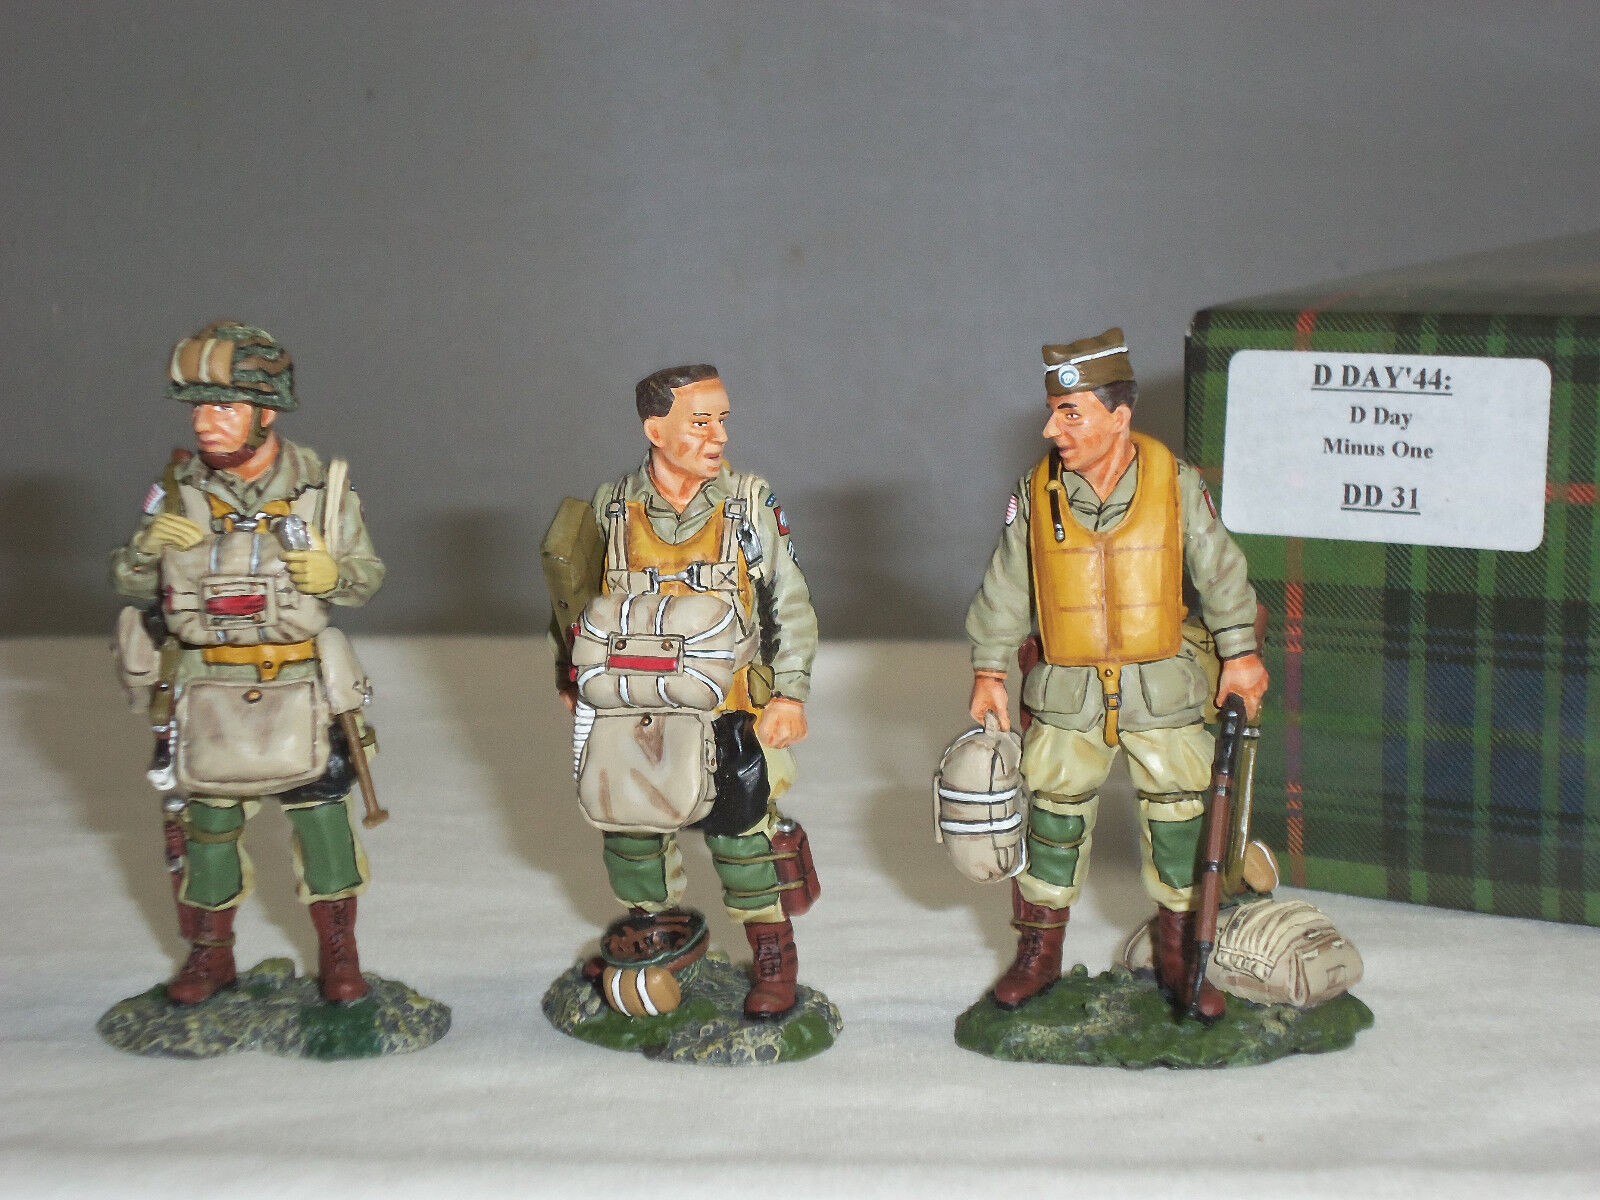 KING AND COUNTRY DD31 DDAY MINUS ONE WORLD WAR TWO METAL TOY SOLDIER FIGURE SET